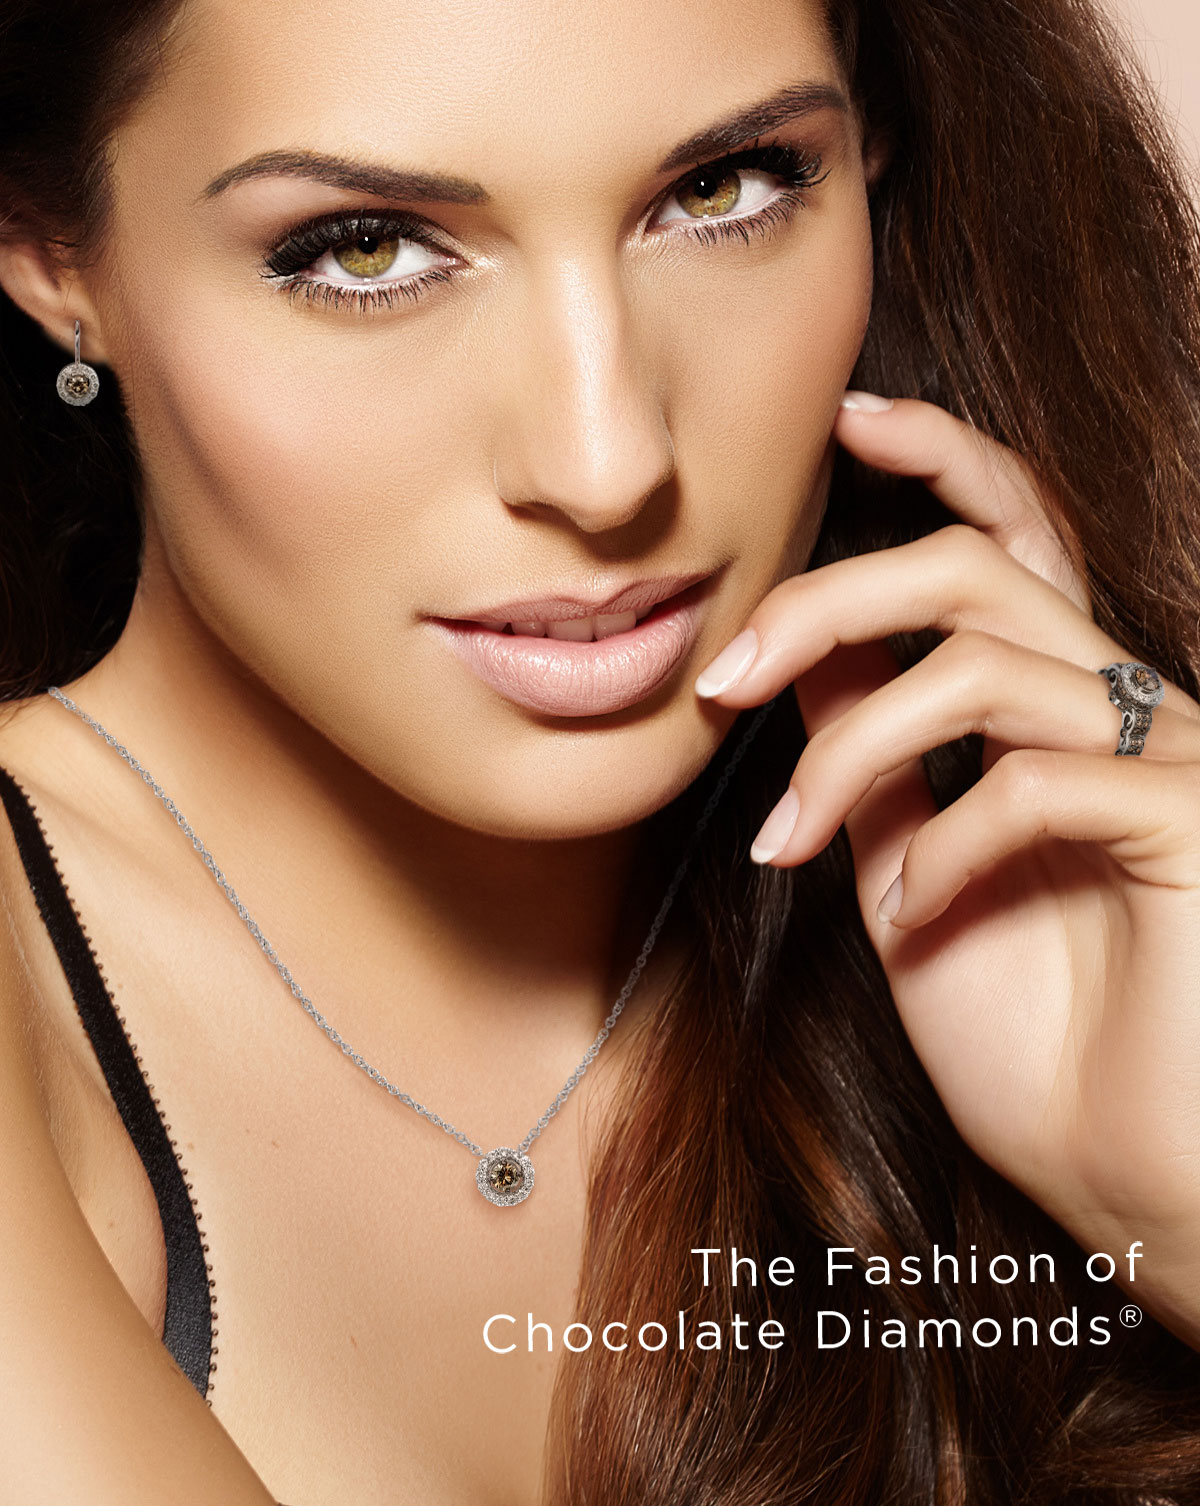 The Fashion Of Chocolate Diamonds